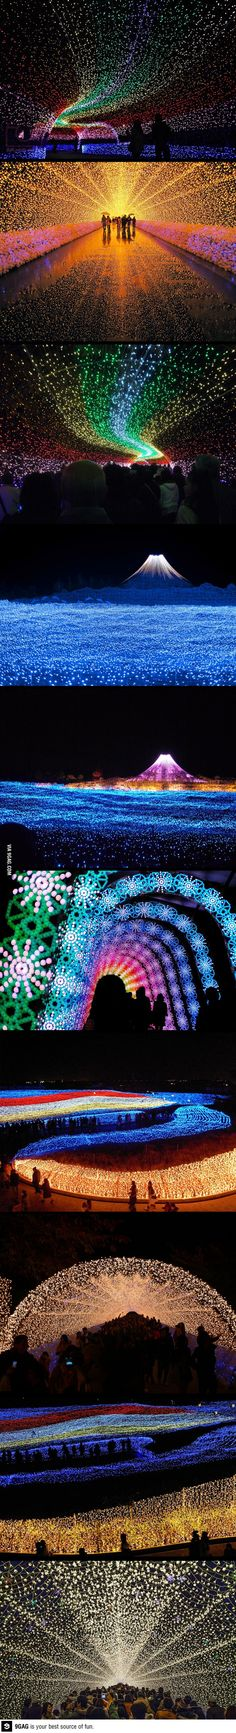 Winter light festival in Japan - 7 million LEDs